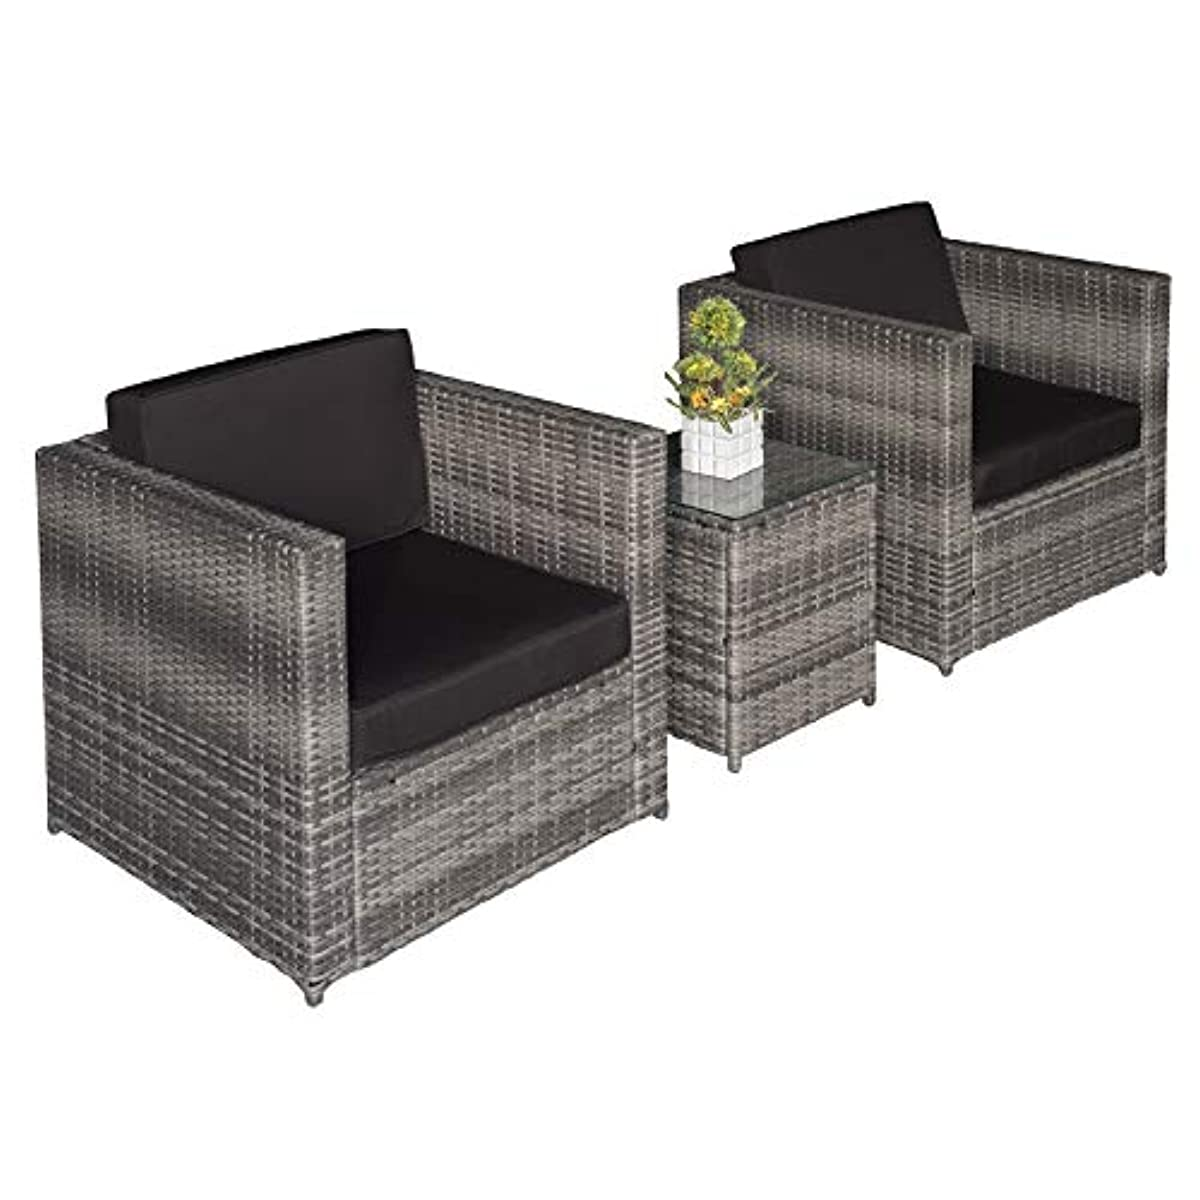 Details about outdoor rattan sofa set 3 piece garden patio balcony modern furniture chairs new